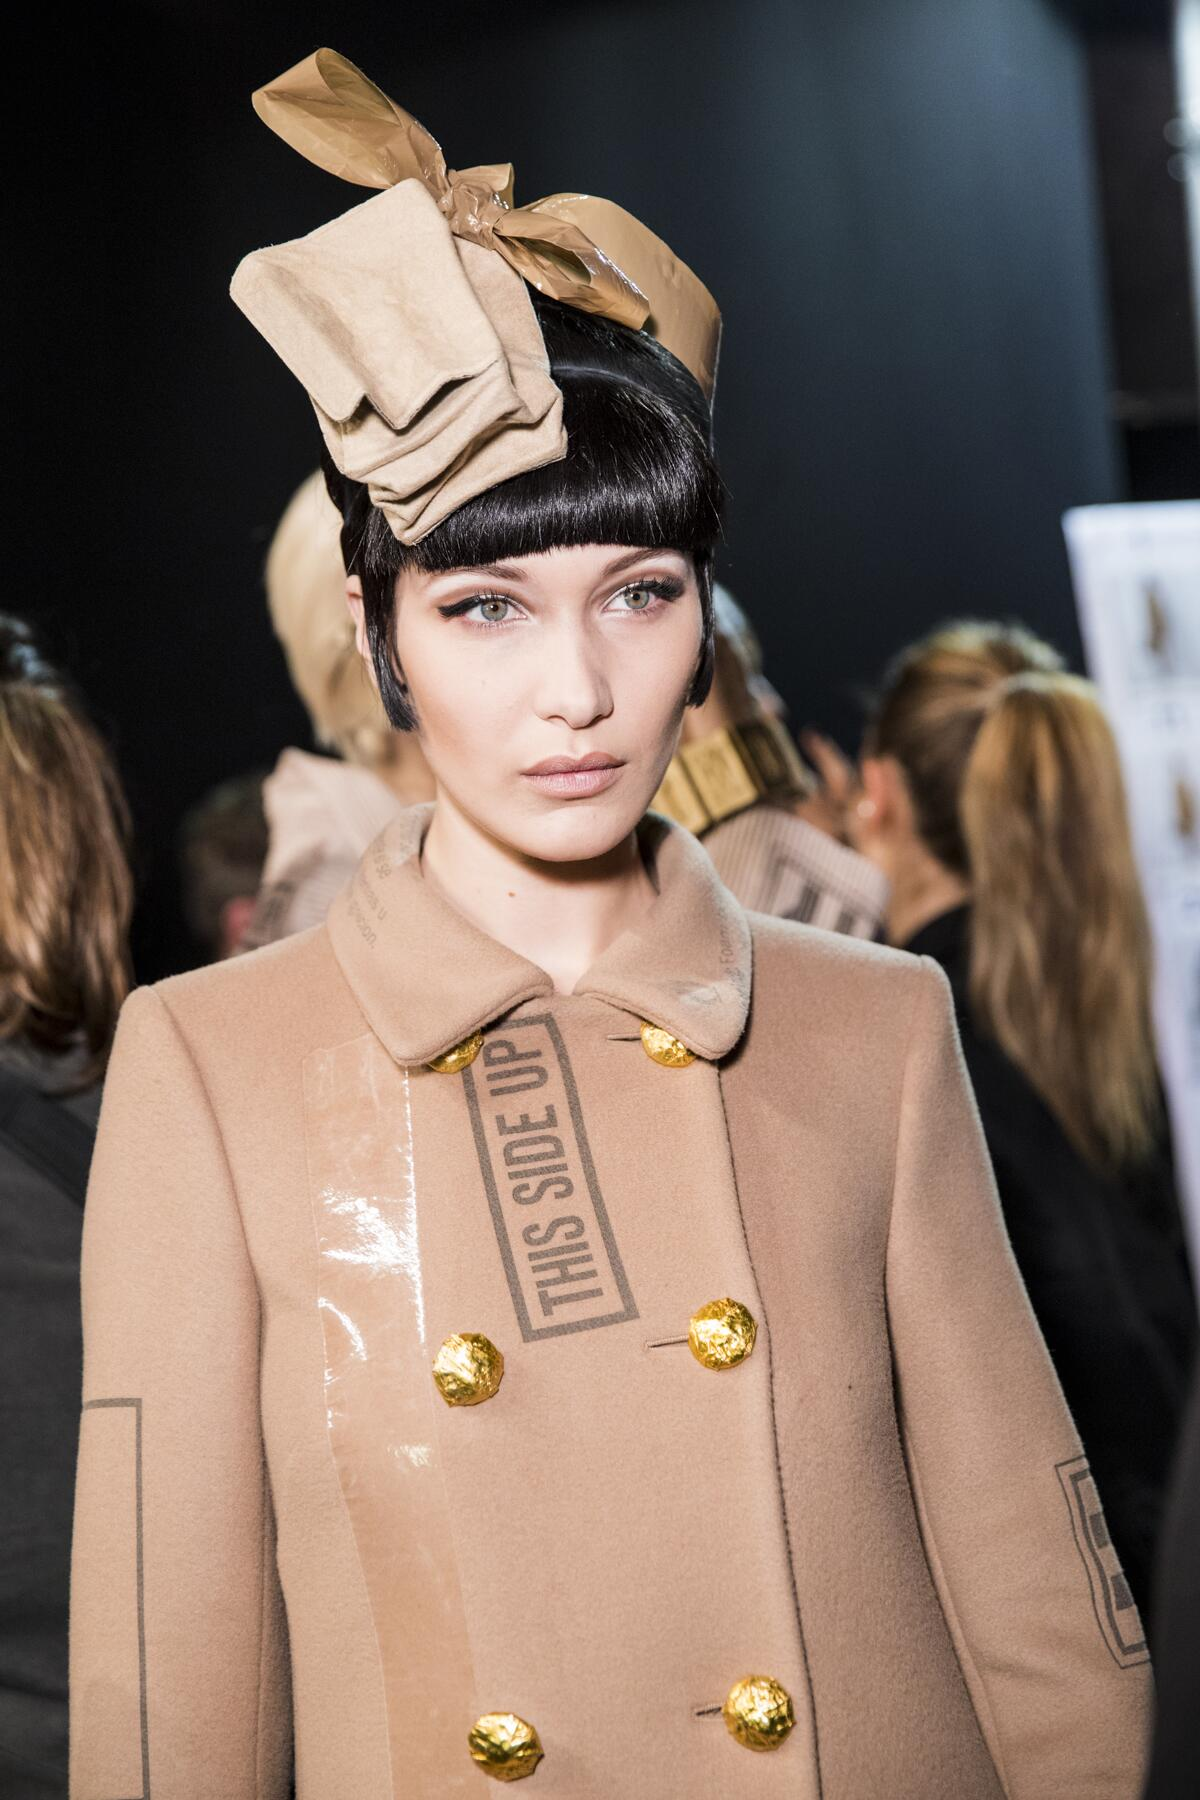 Backstage Moschino Bella Hadid 2017-18